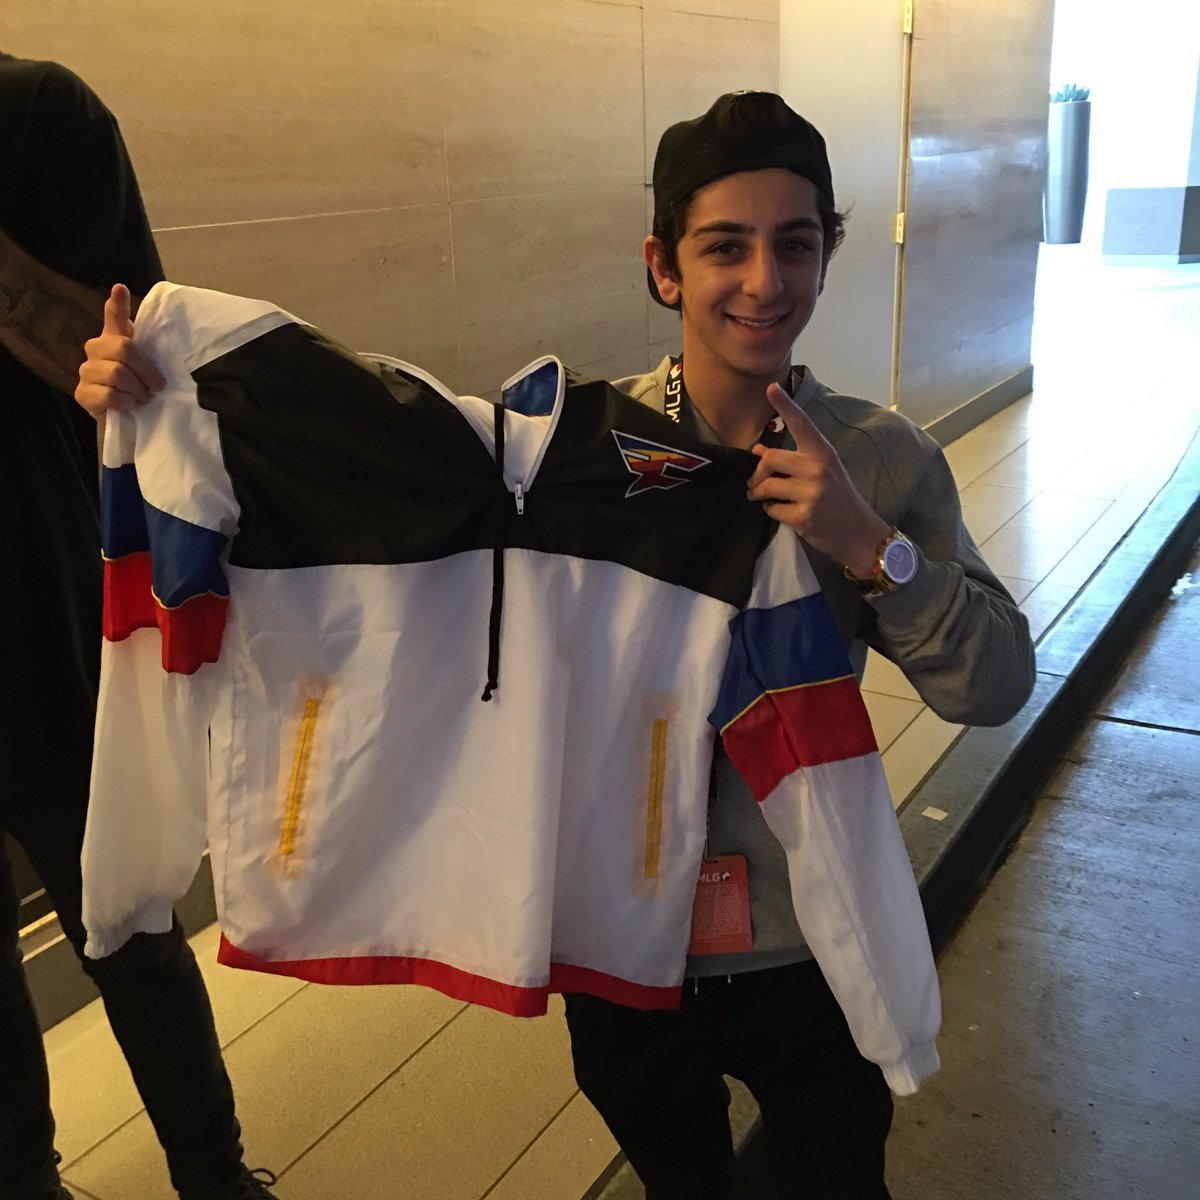 Rug On Twitter U0026quot;These New FaZe Jackets Are So Dope!!u2026